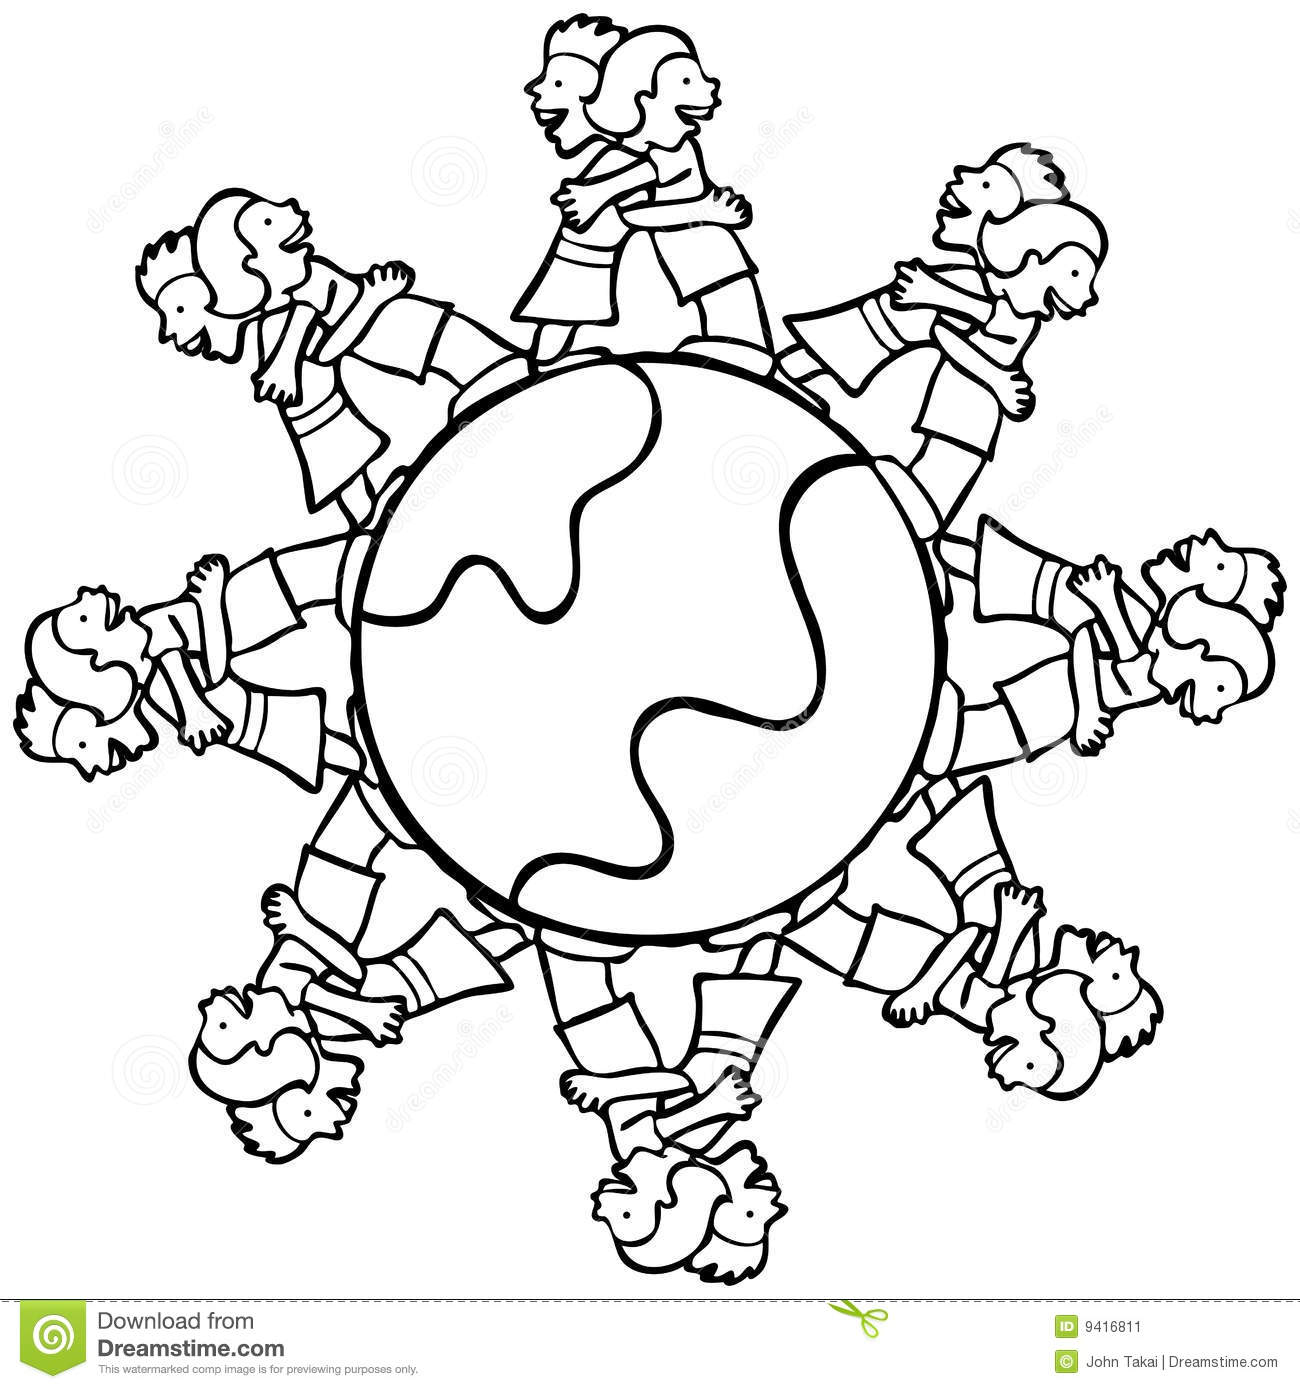 Children Holding Hands Around The World Coloring Pages